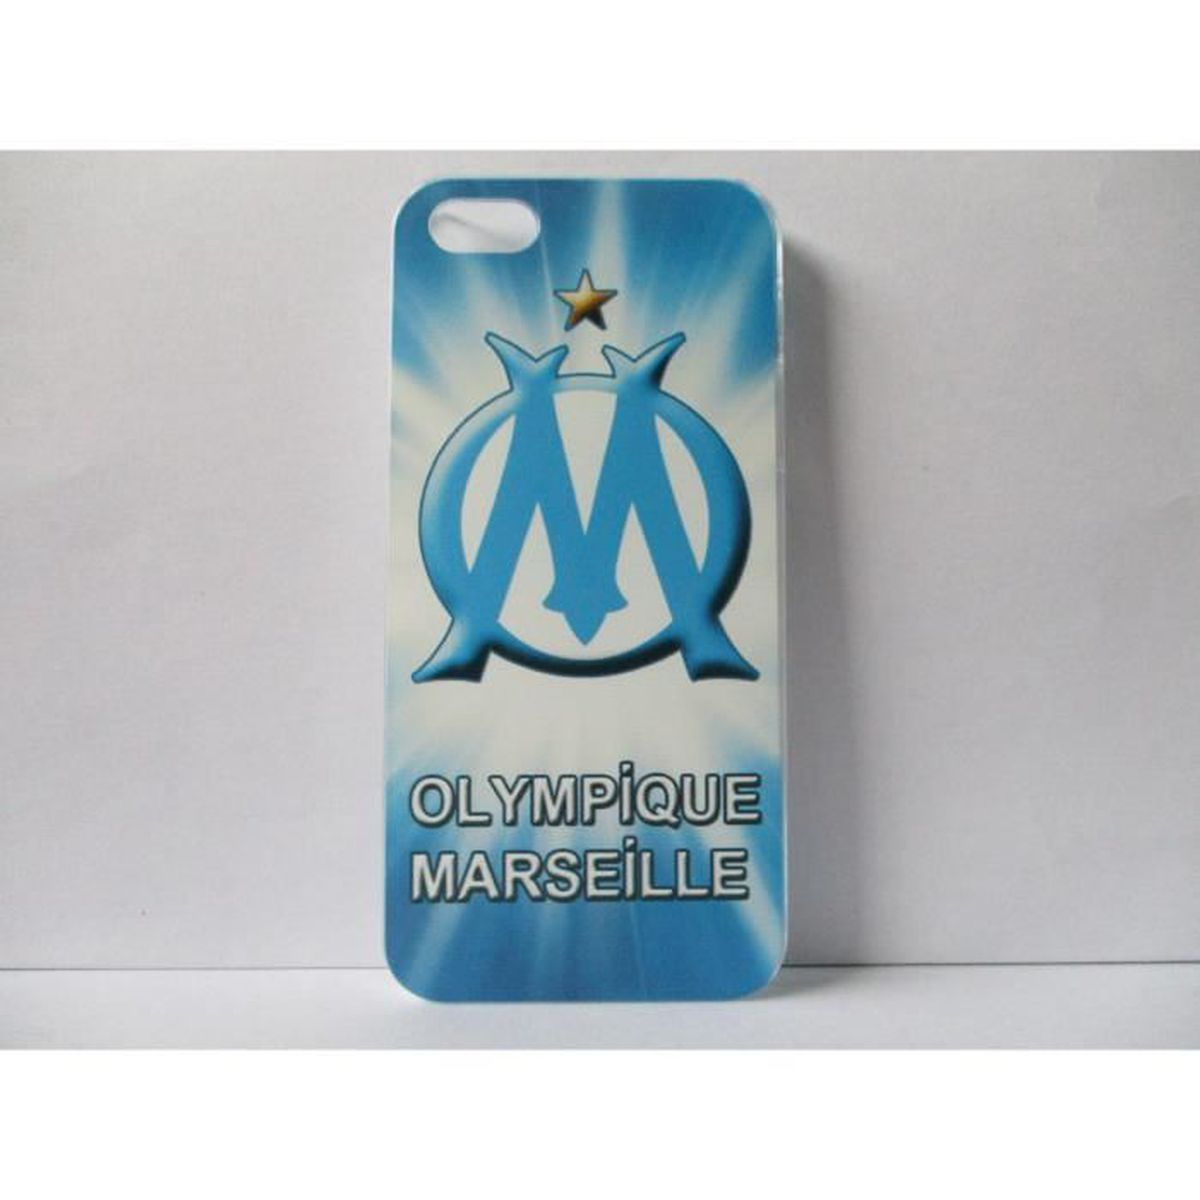 coque om marseille iphone 5 5s se neuf motif b achat. Black Bedroom Furniture Sets. Home Design Ideas